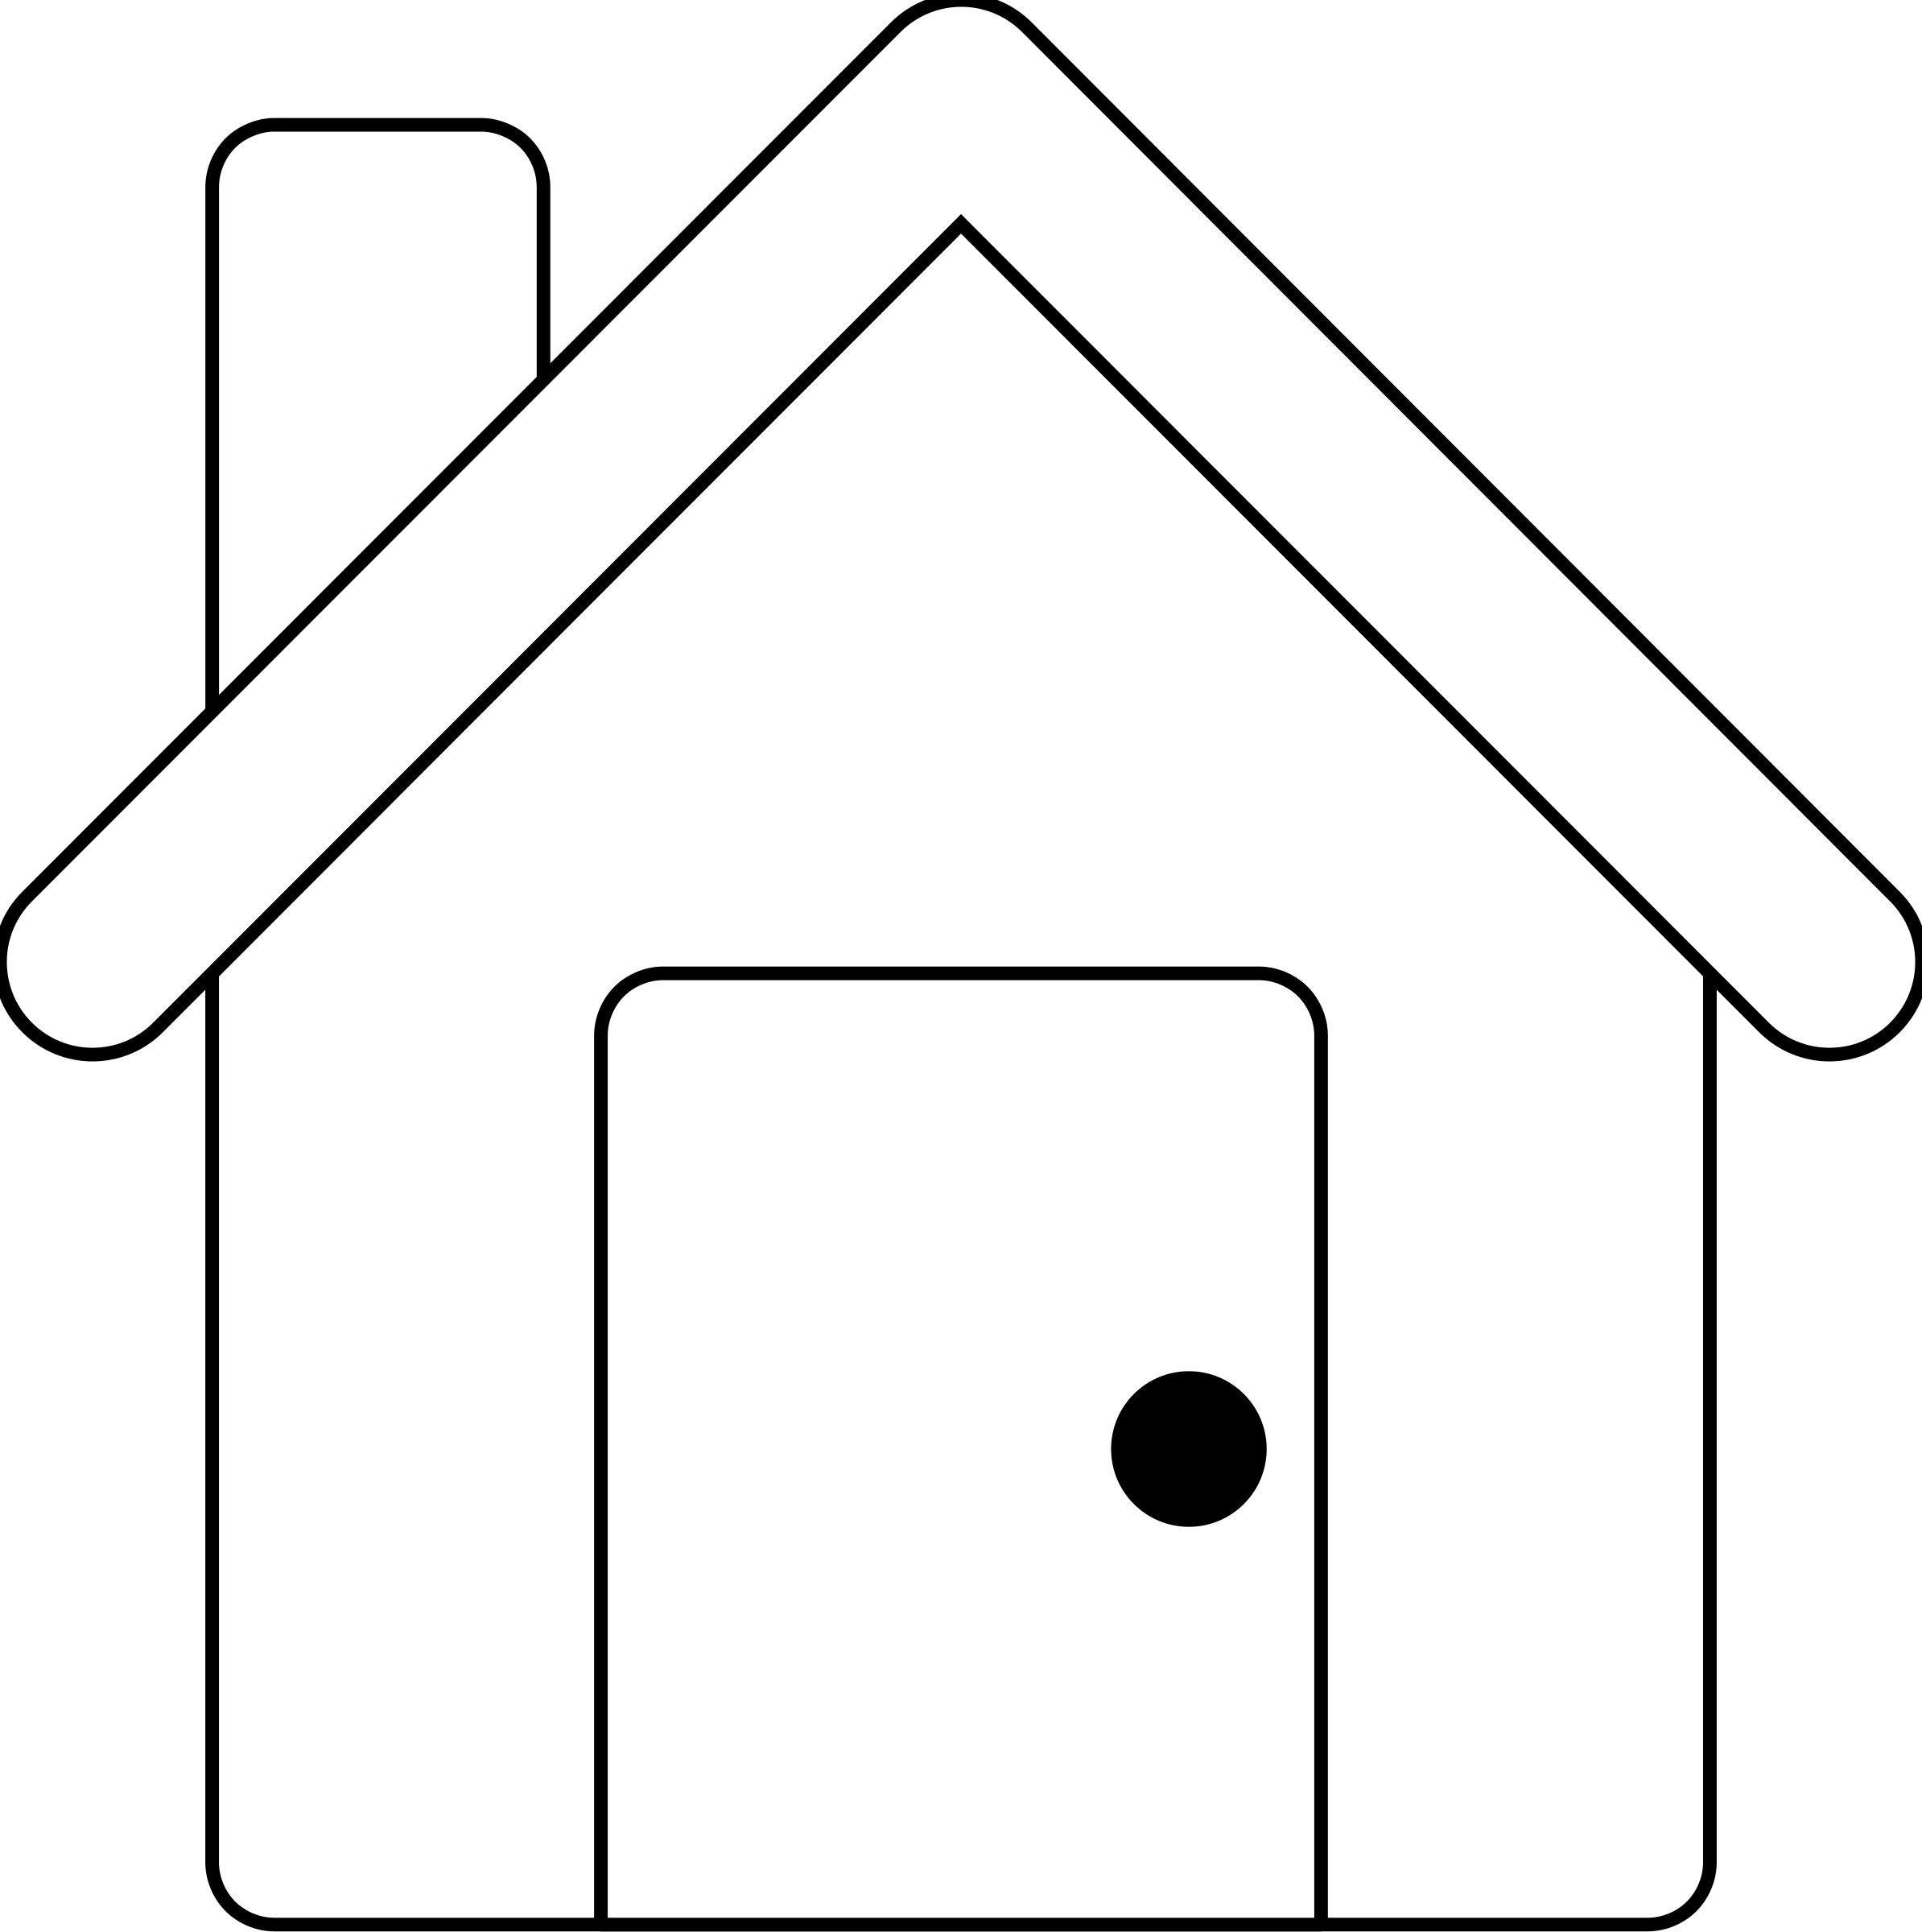 House big image png. Square clipart line art